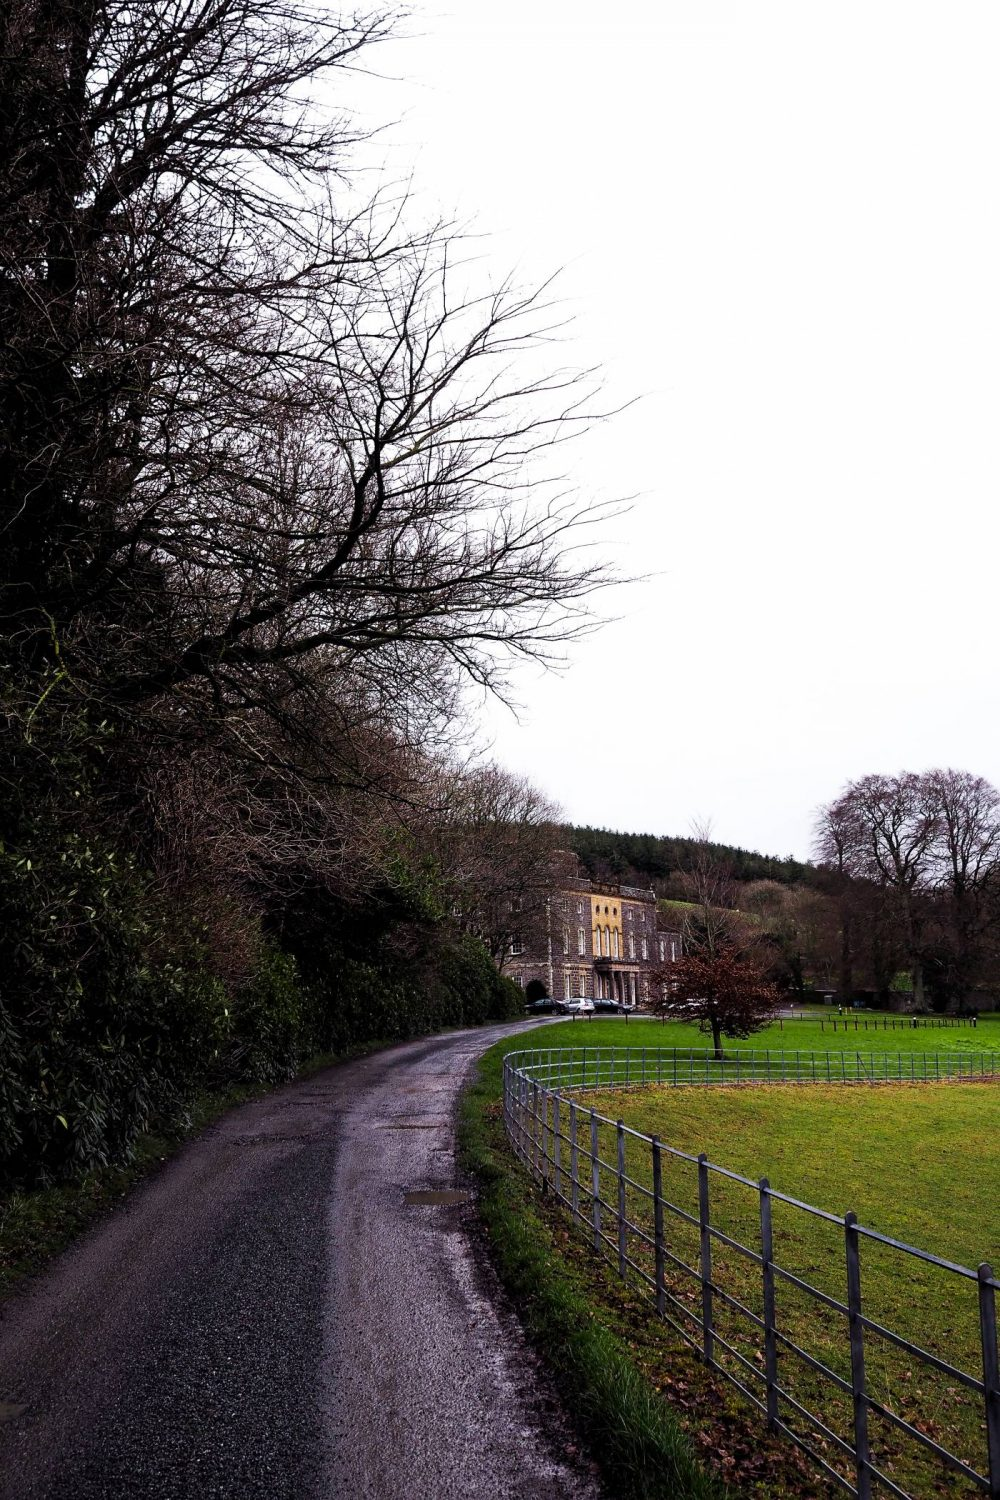 The driveway leading up to Nanteos Mansion surrounded by fields